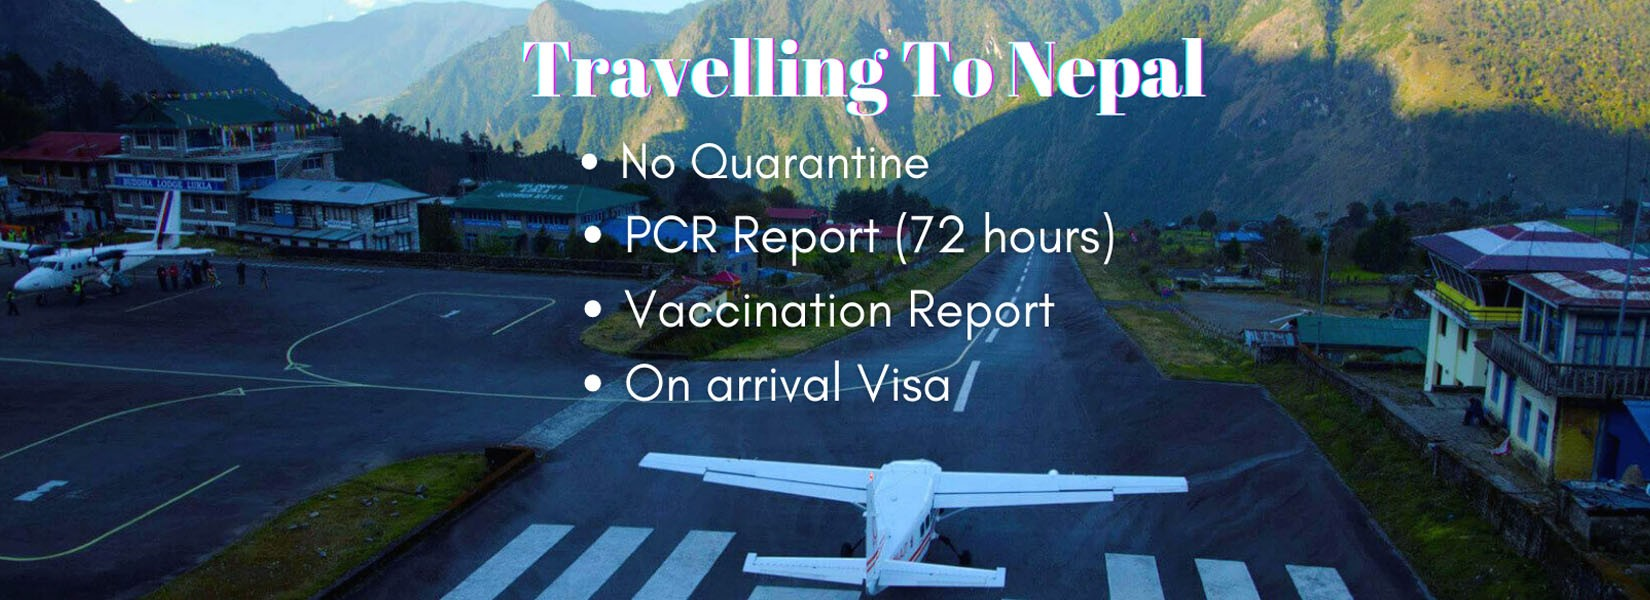 Travelling-to-Nepal